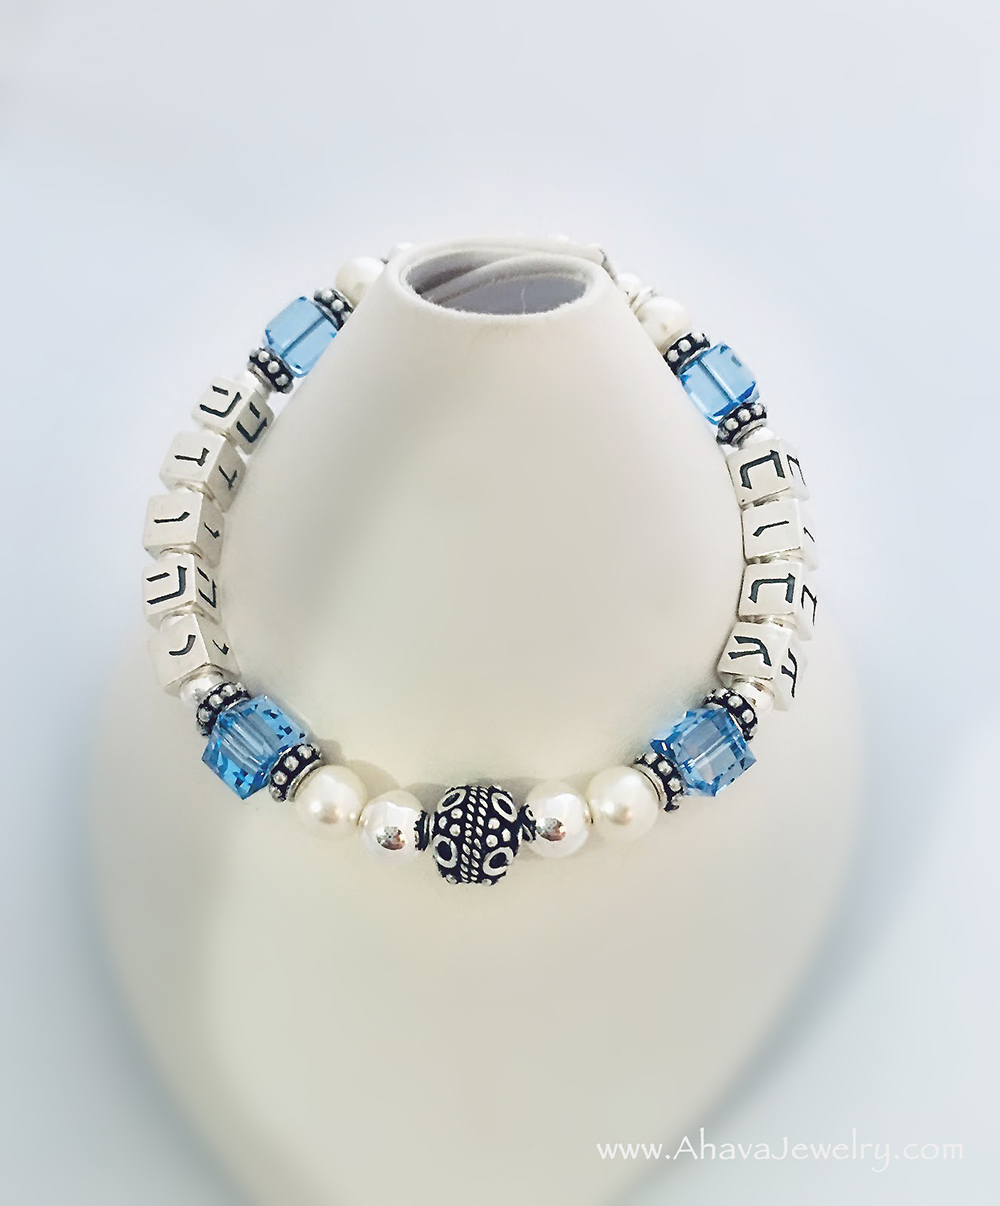 Item: AJ - S6 BUBBE and YEHUDA in Hebrew Bracelet Shown with 4 Blue Topaz Swarovsk birthstone crystals (December).